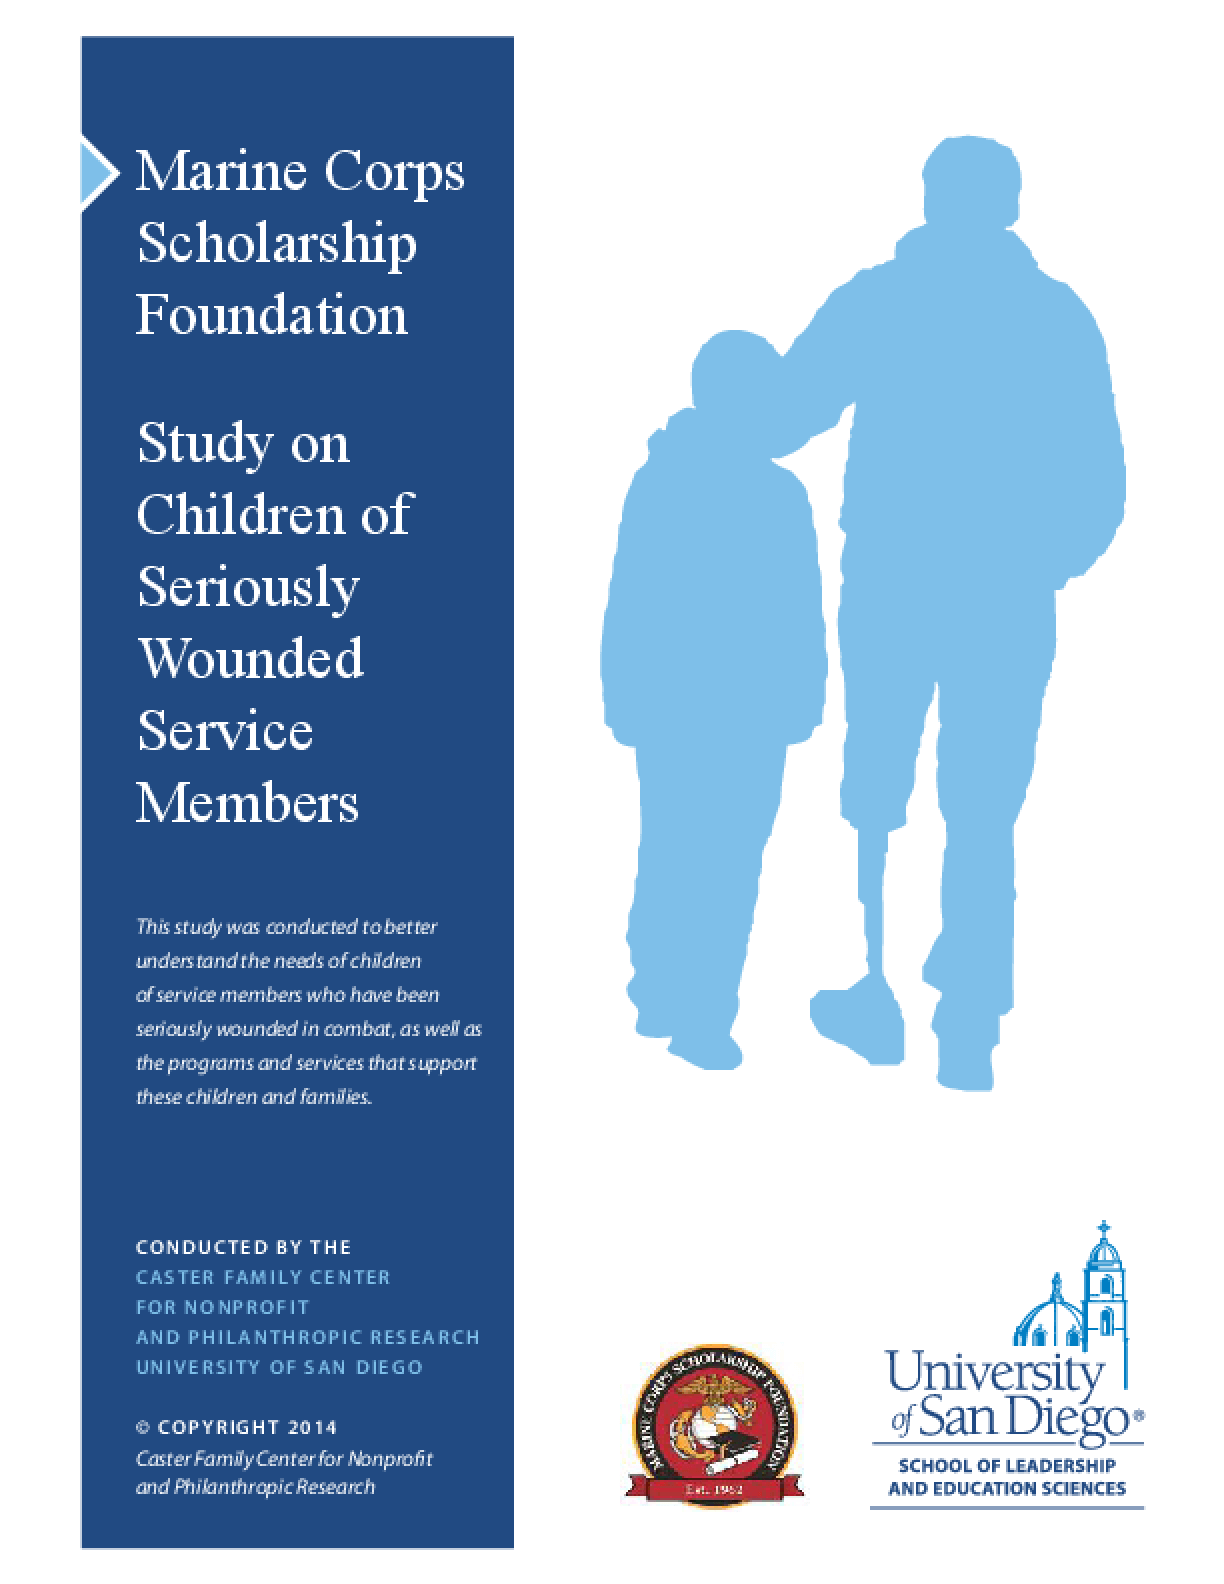 Study on Children of Seriously Wounded Service Members